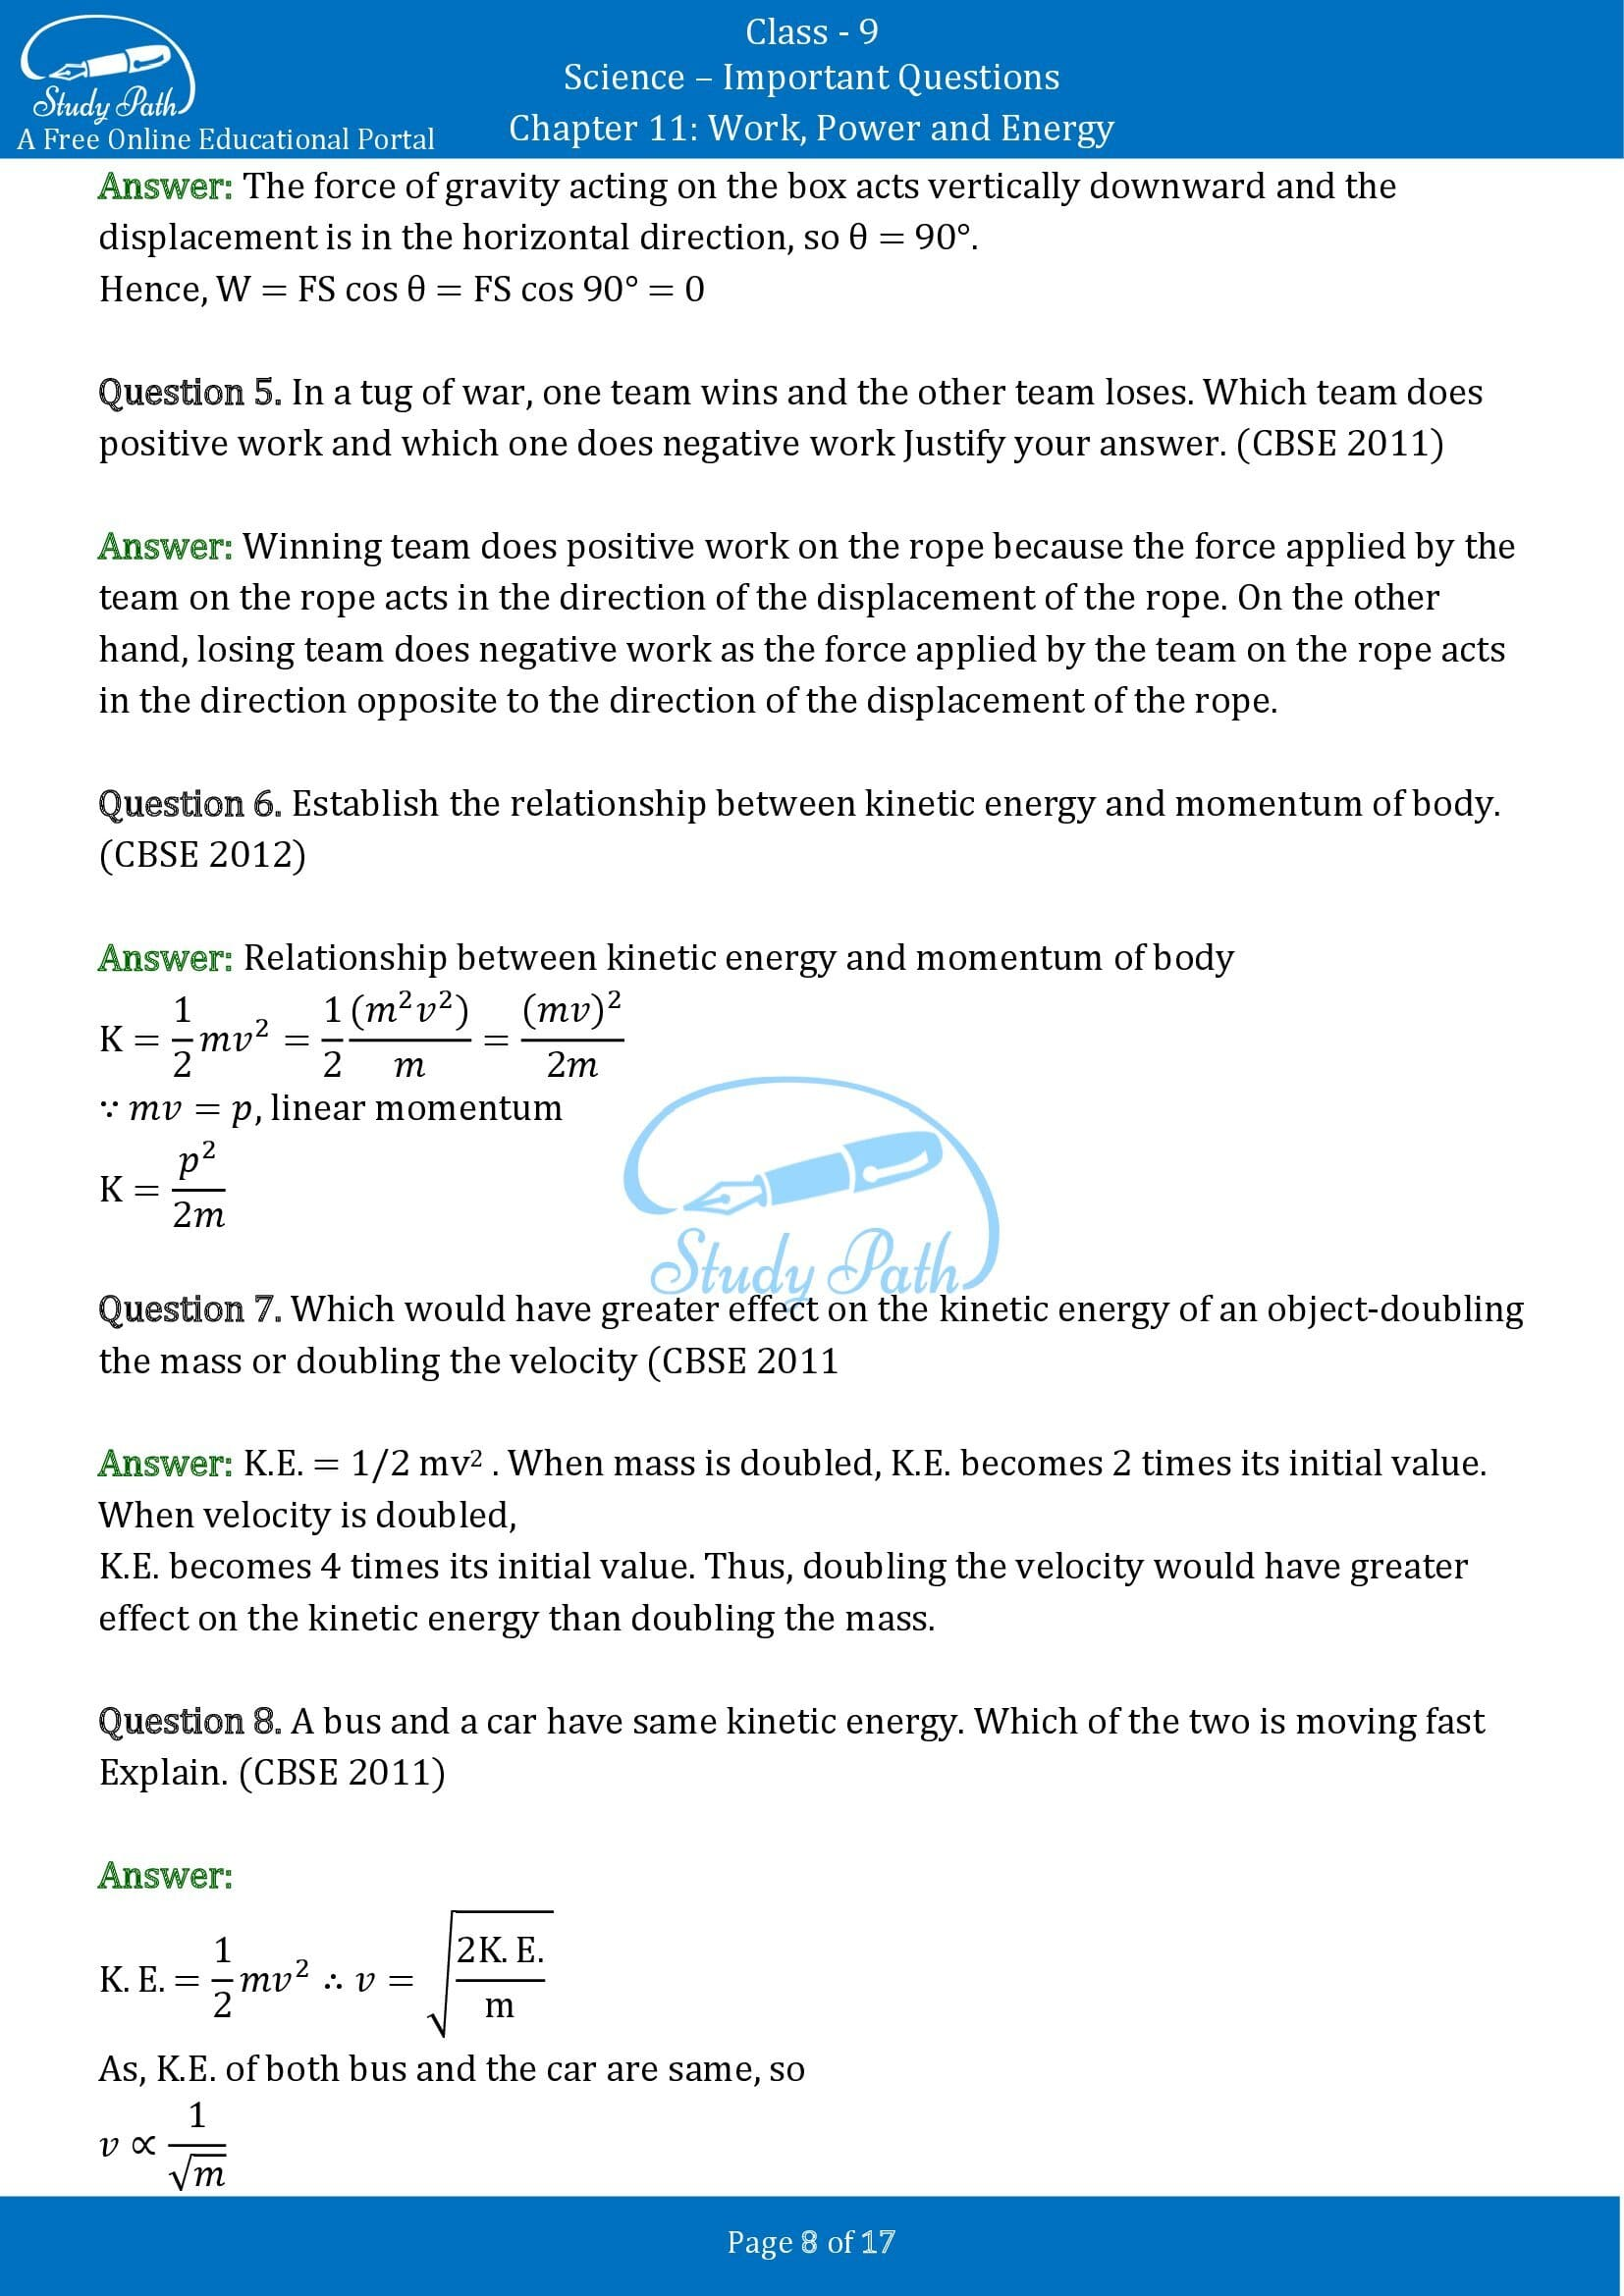 Important Questions for Class 9 Science Chapter 11 Work Power and Energy 00008